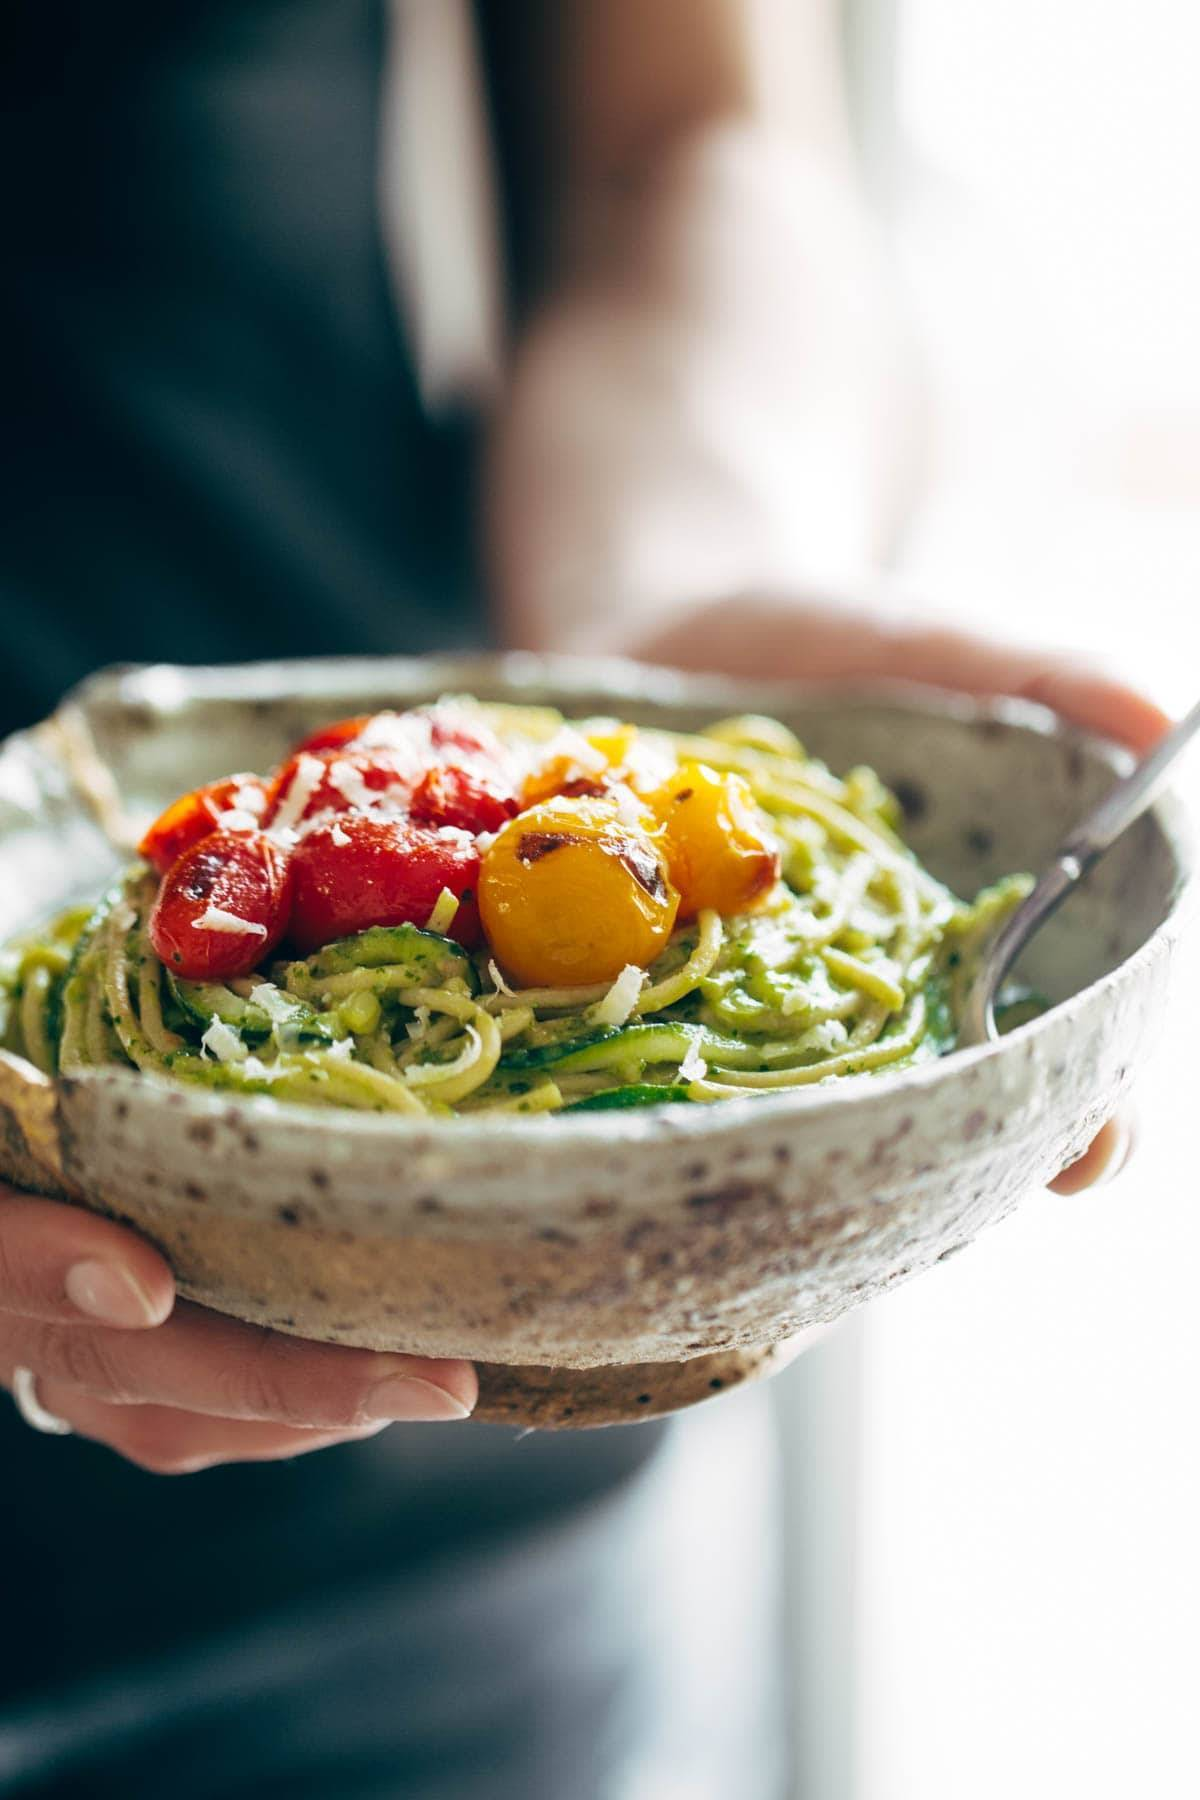 Burst Tomato and Zucchini Spaghetti in a bowl with a fork.